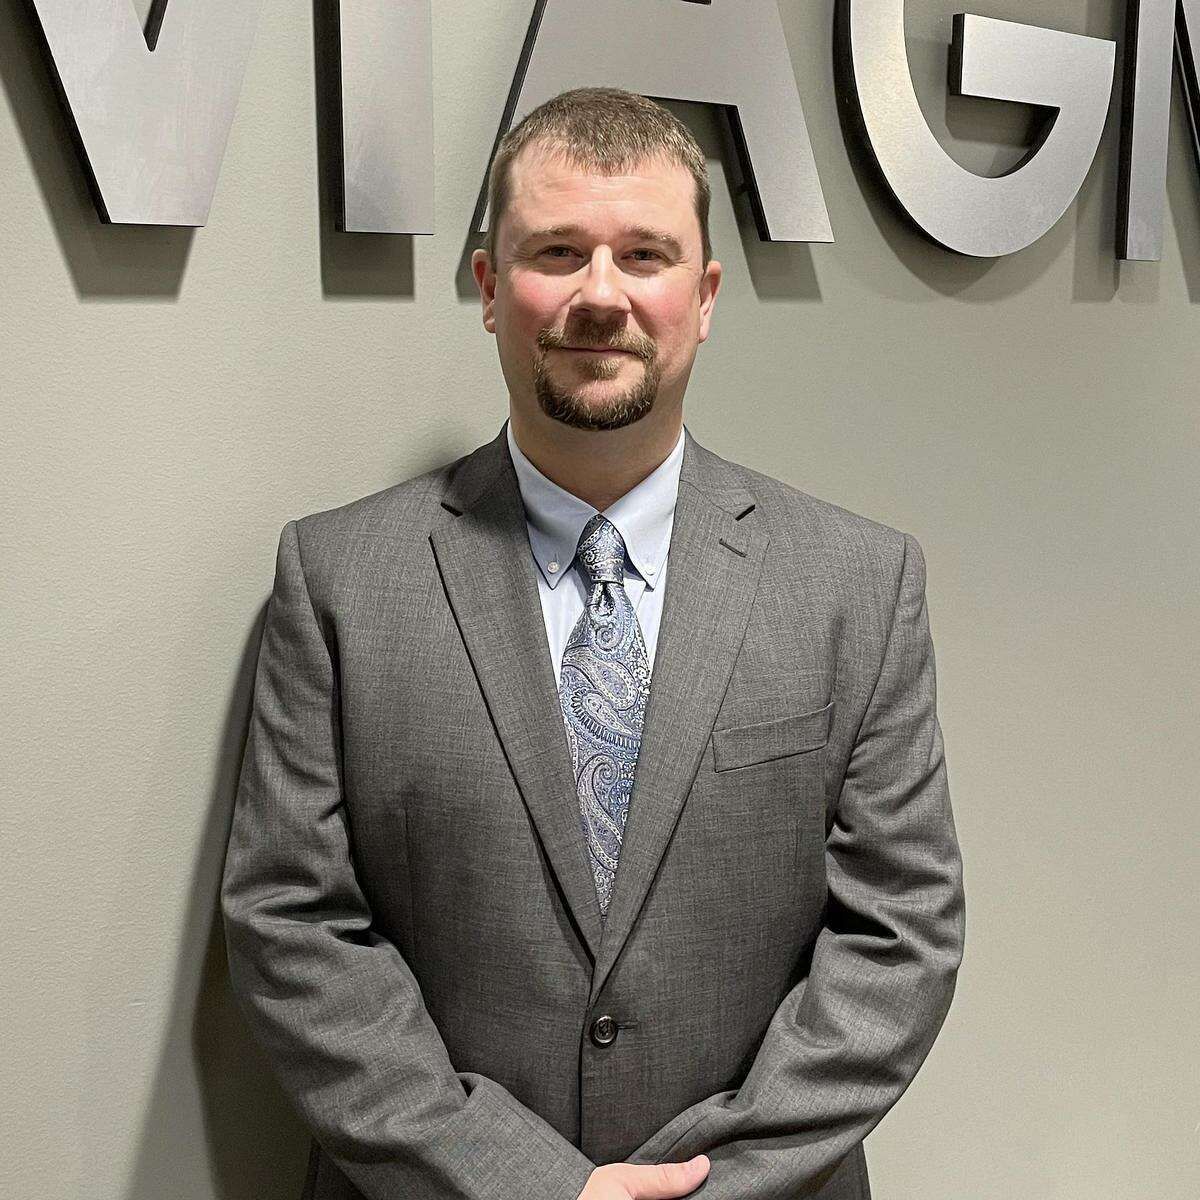 John Allbritton was named new principal at Bear Branch Elementary, Magnolia ISD announced in a news release.